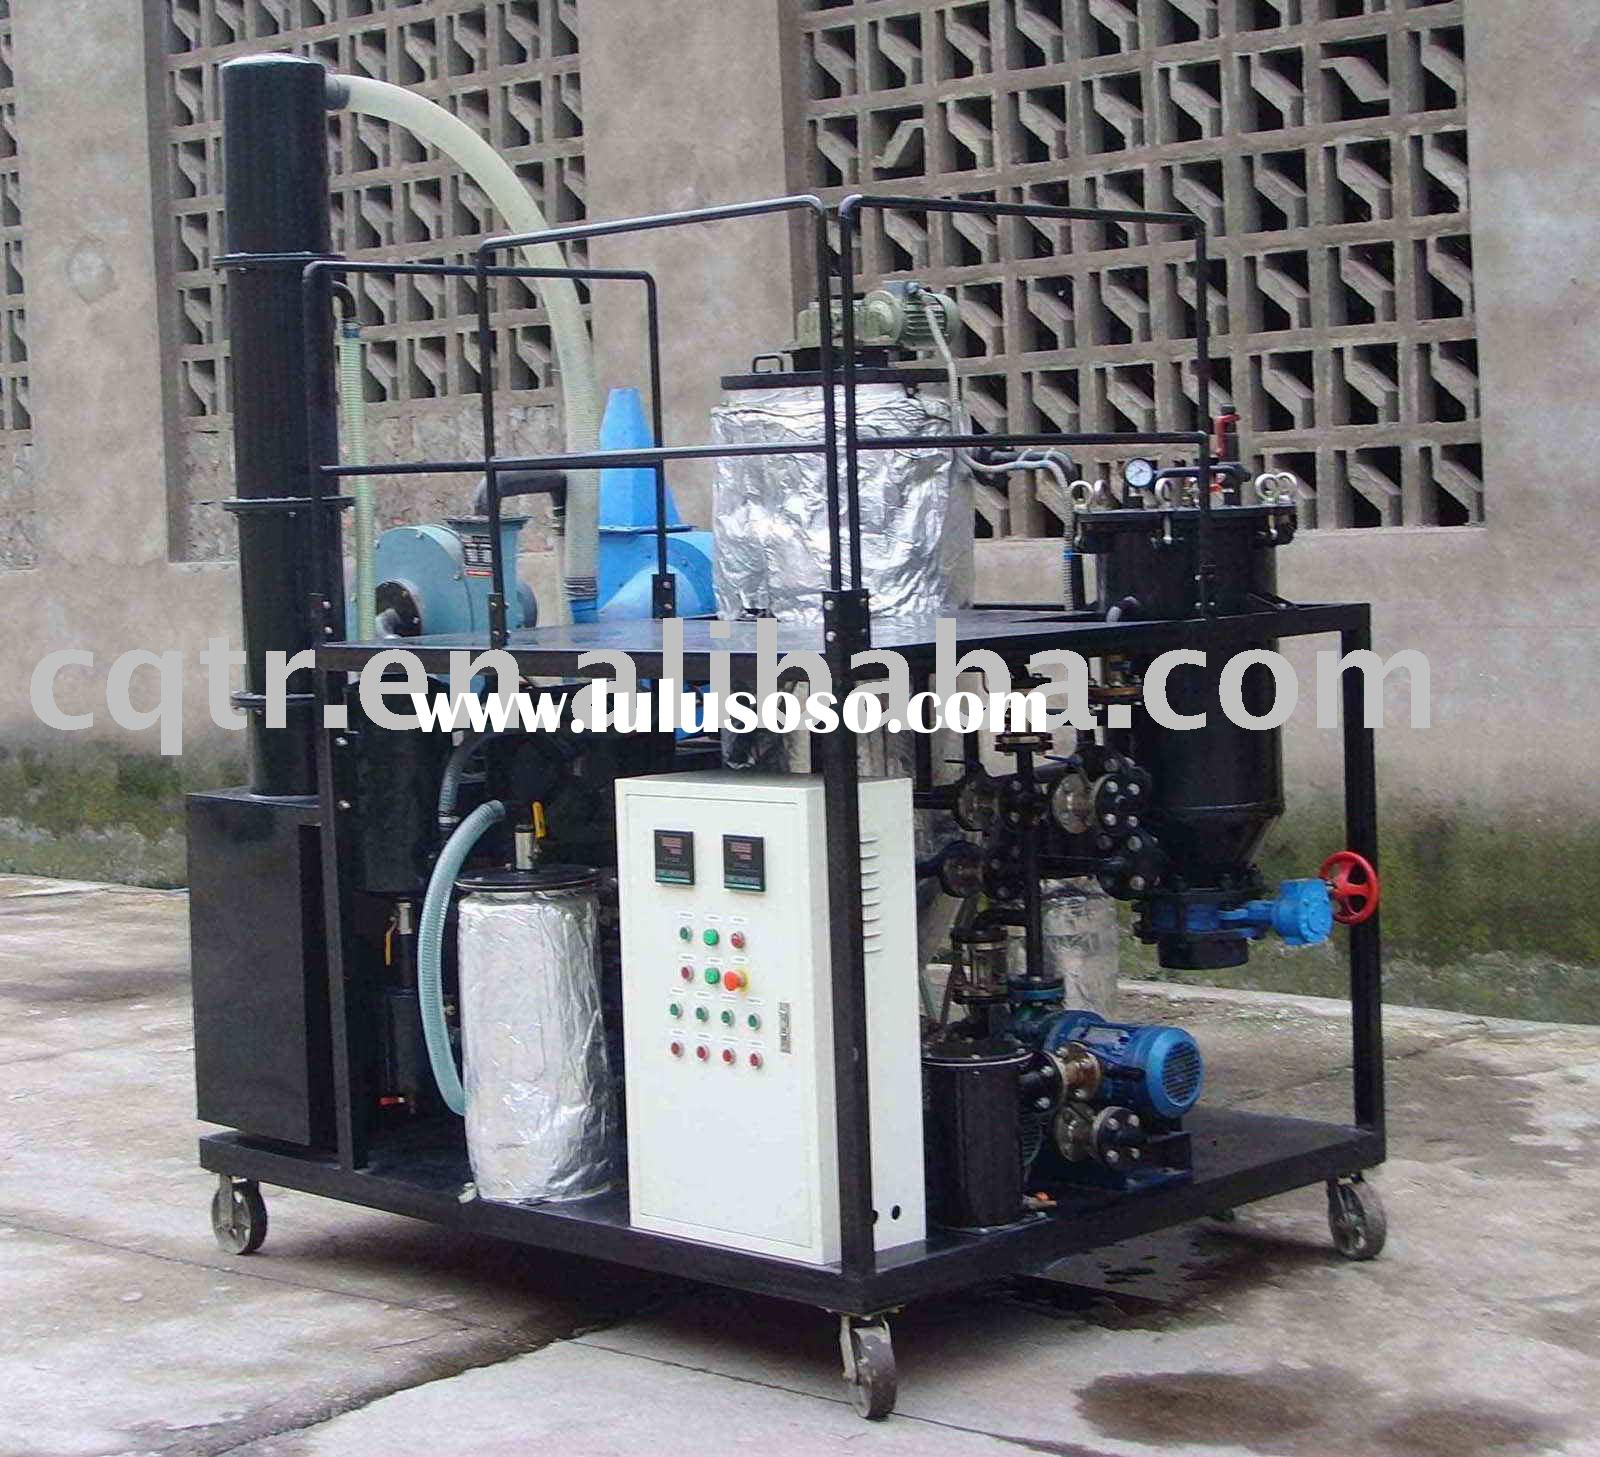 Used car oil recycling, engine oil recycling, motor oil recycling plant